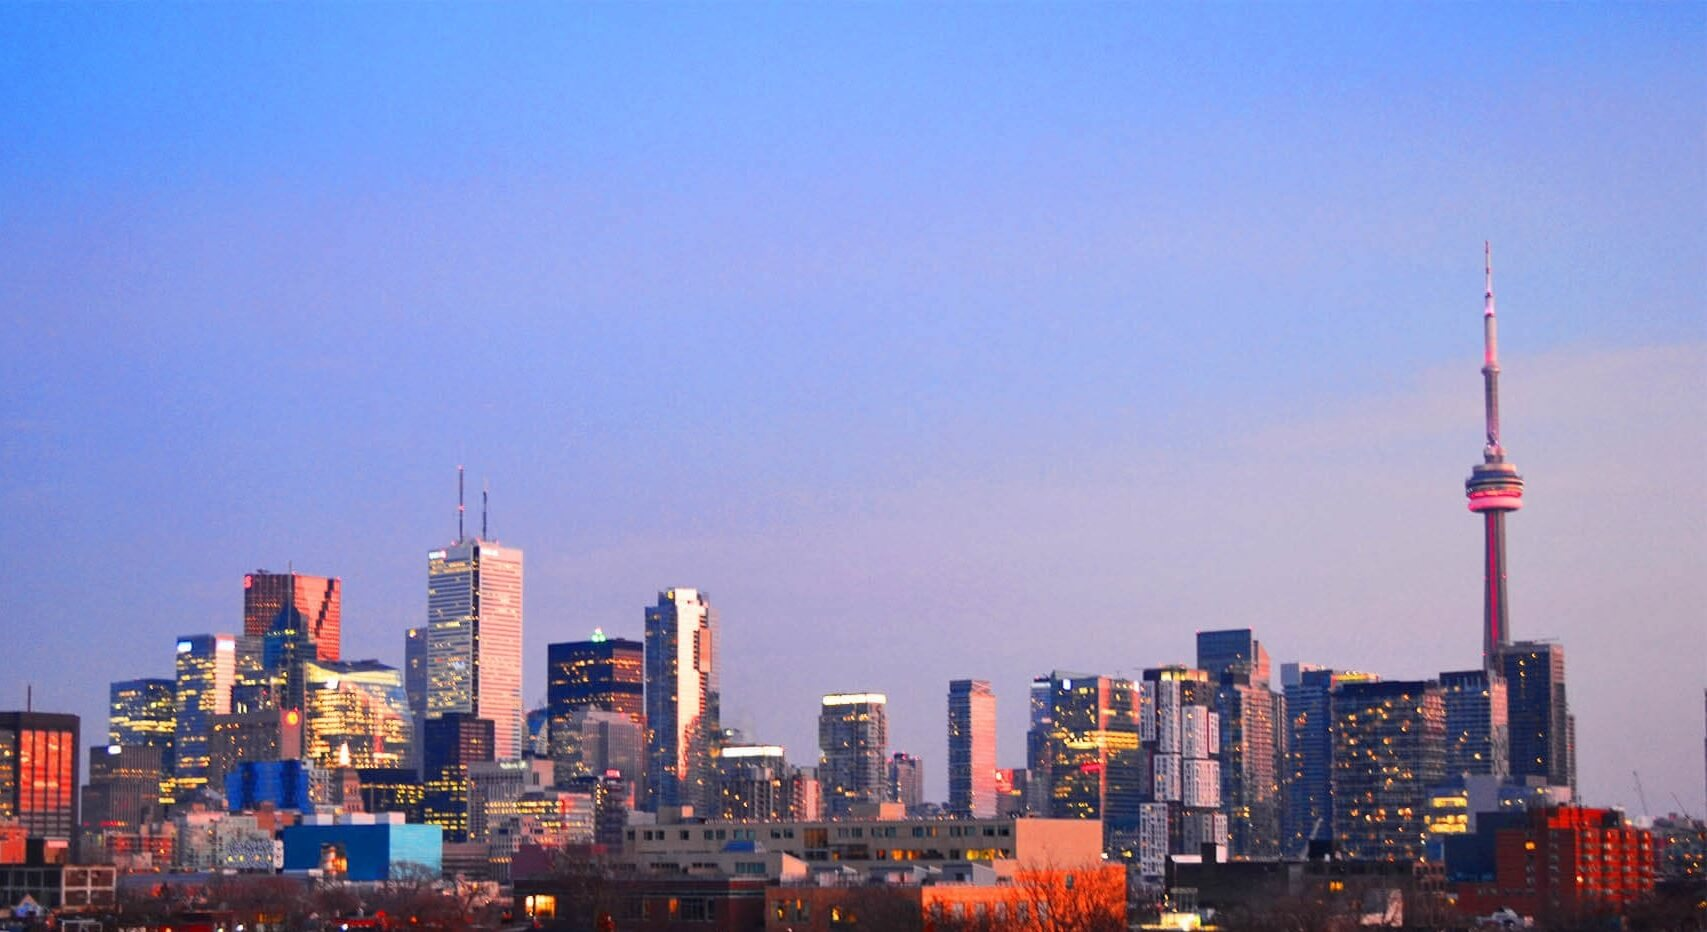 Vista dell'orizzonte di Toronto all'alba